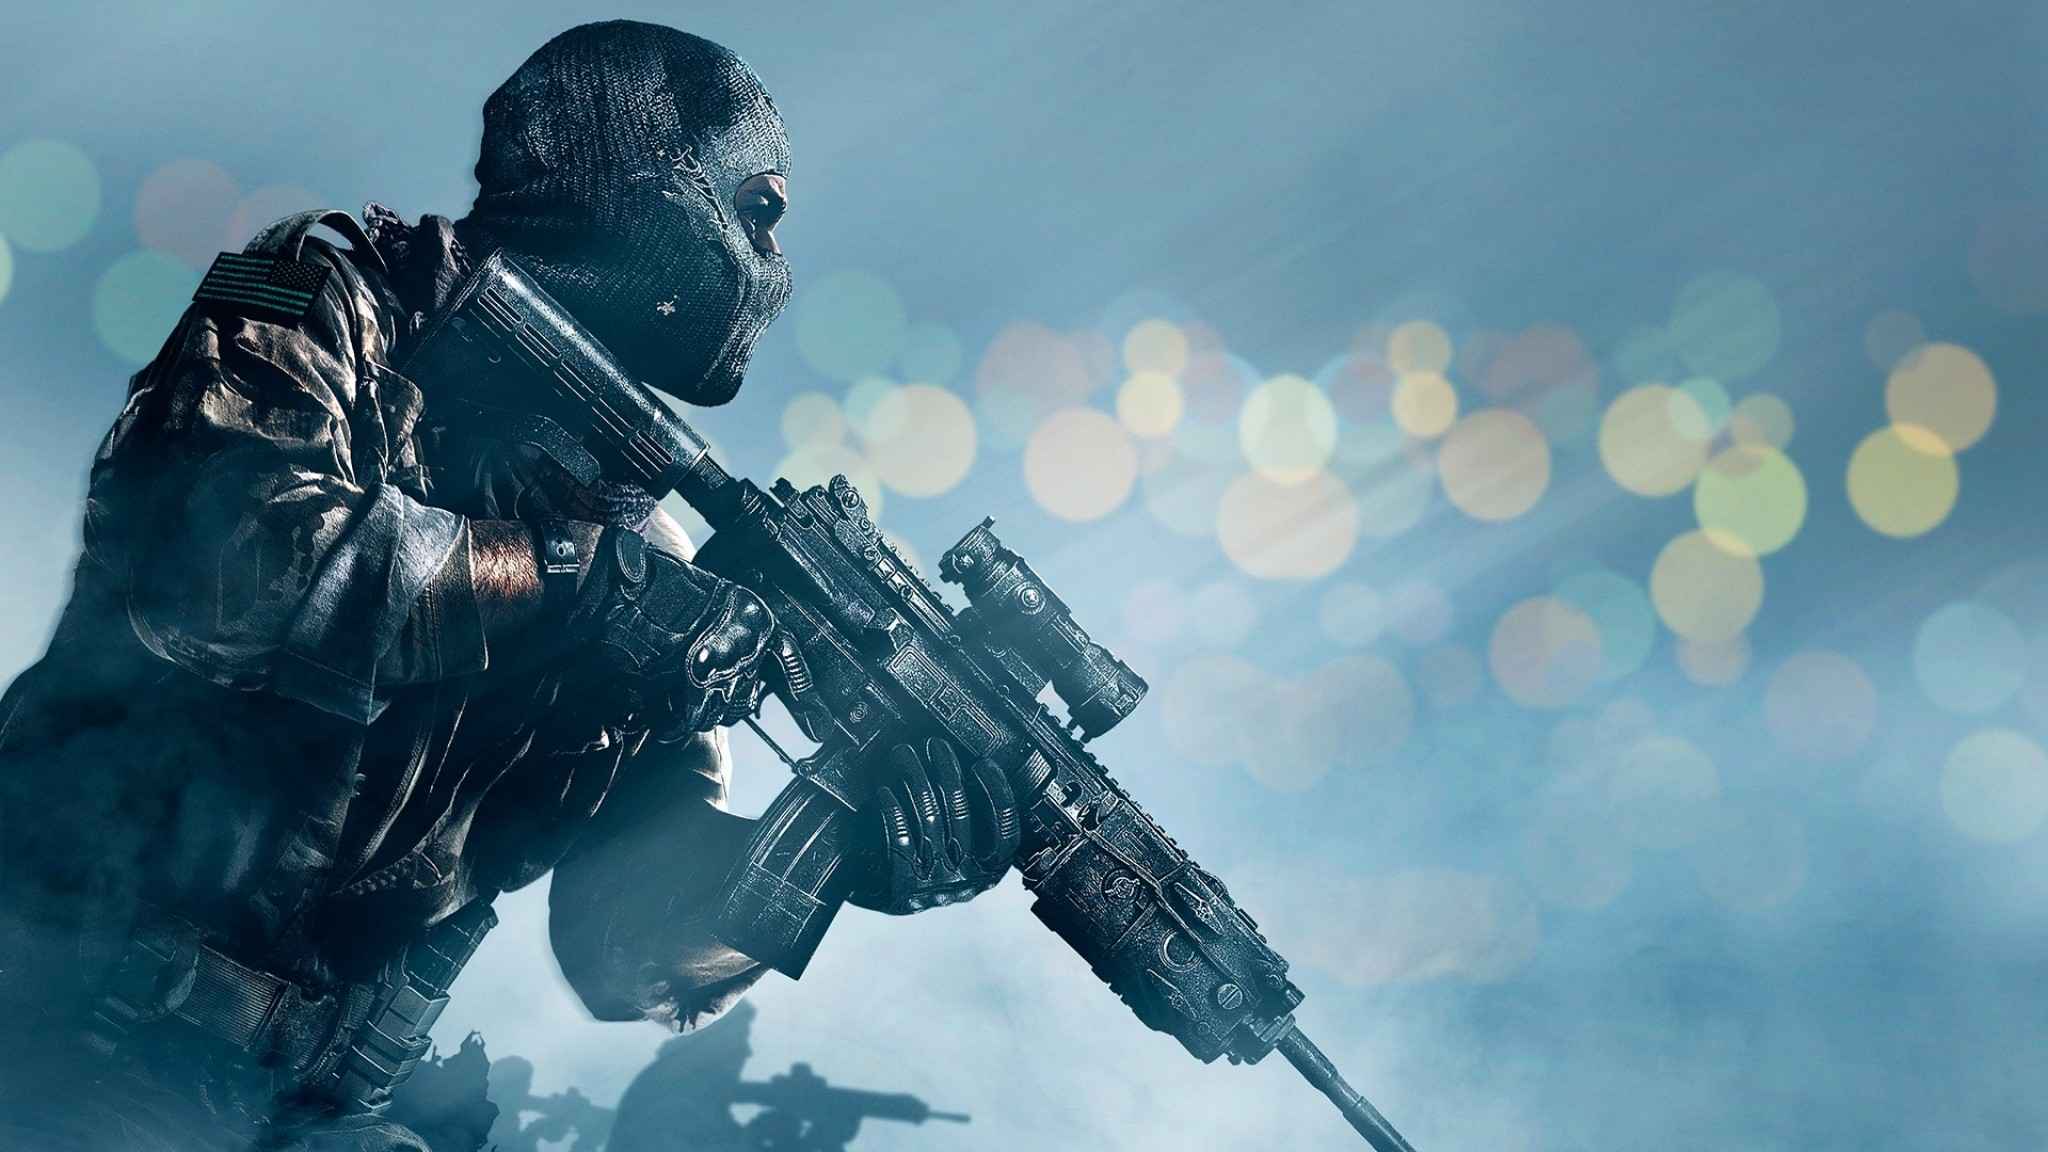 Preview wallpaper call of duty ghosts, activision, infinity ward, soldier,  gun,